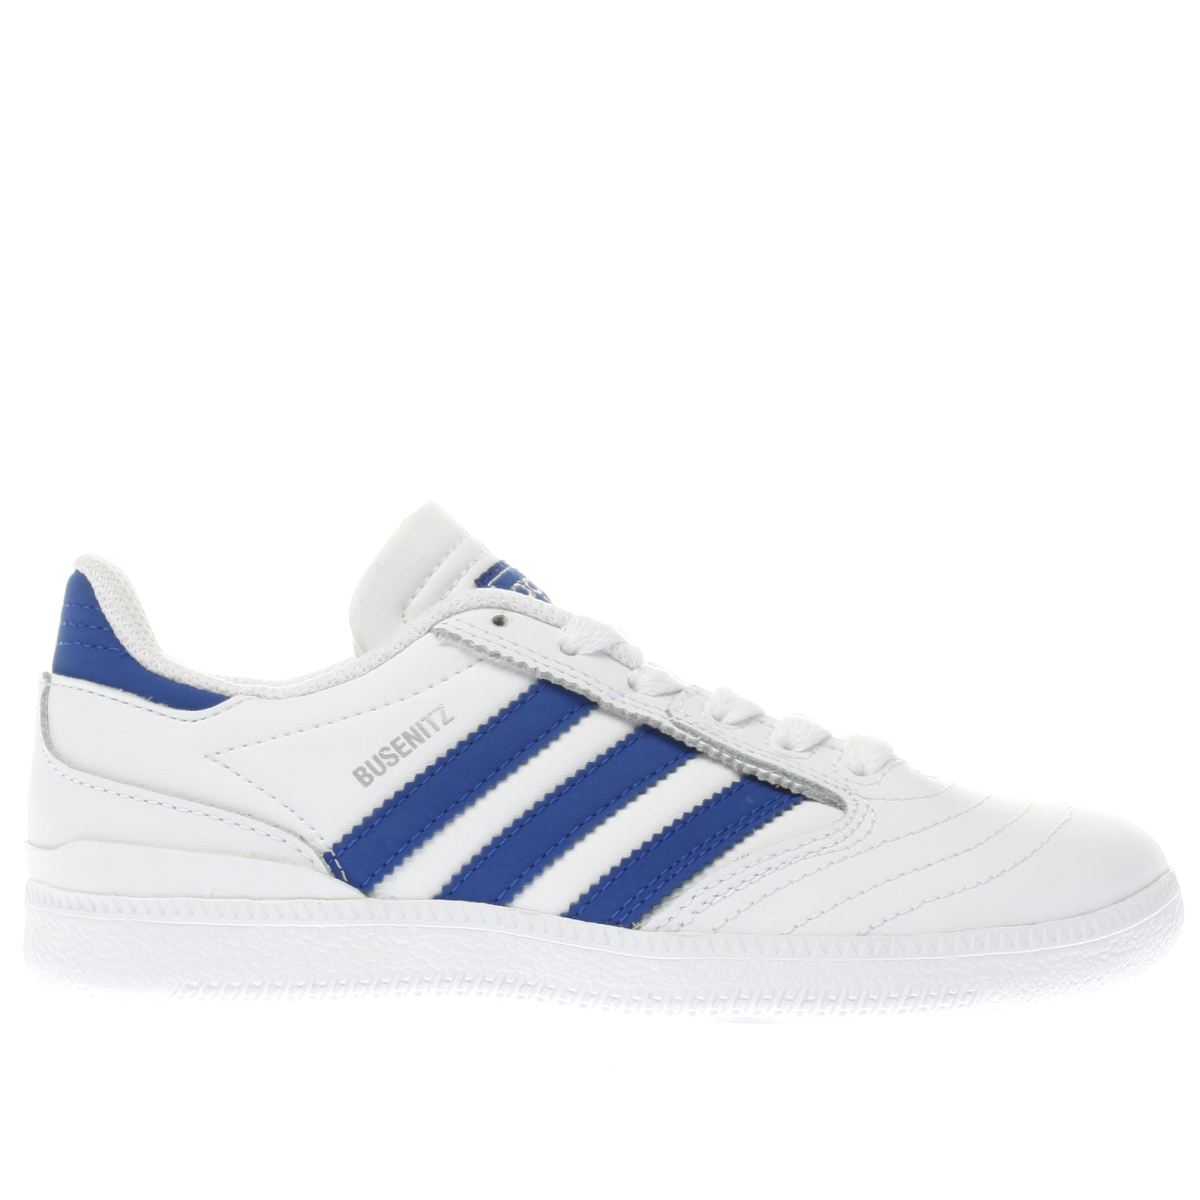 adidas white & navy busenitz Boys Junior Trainers